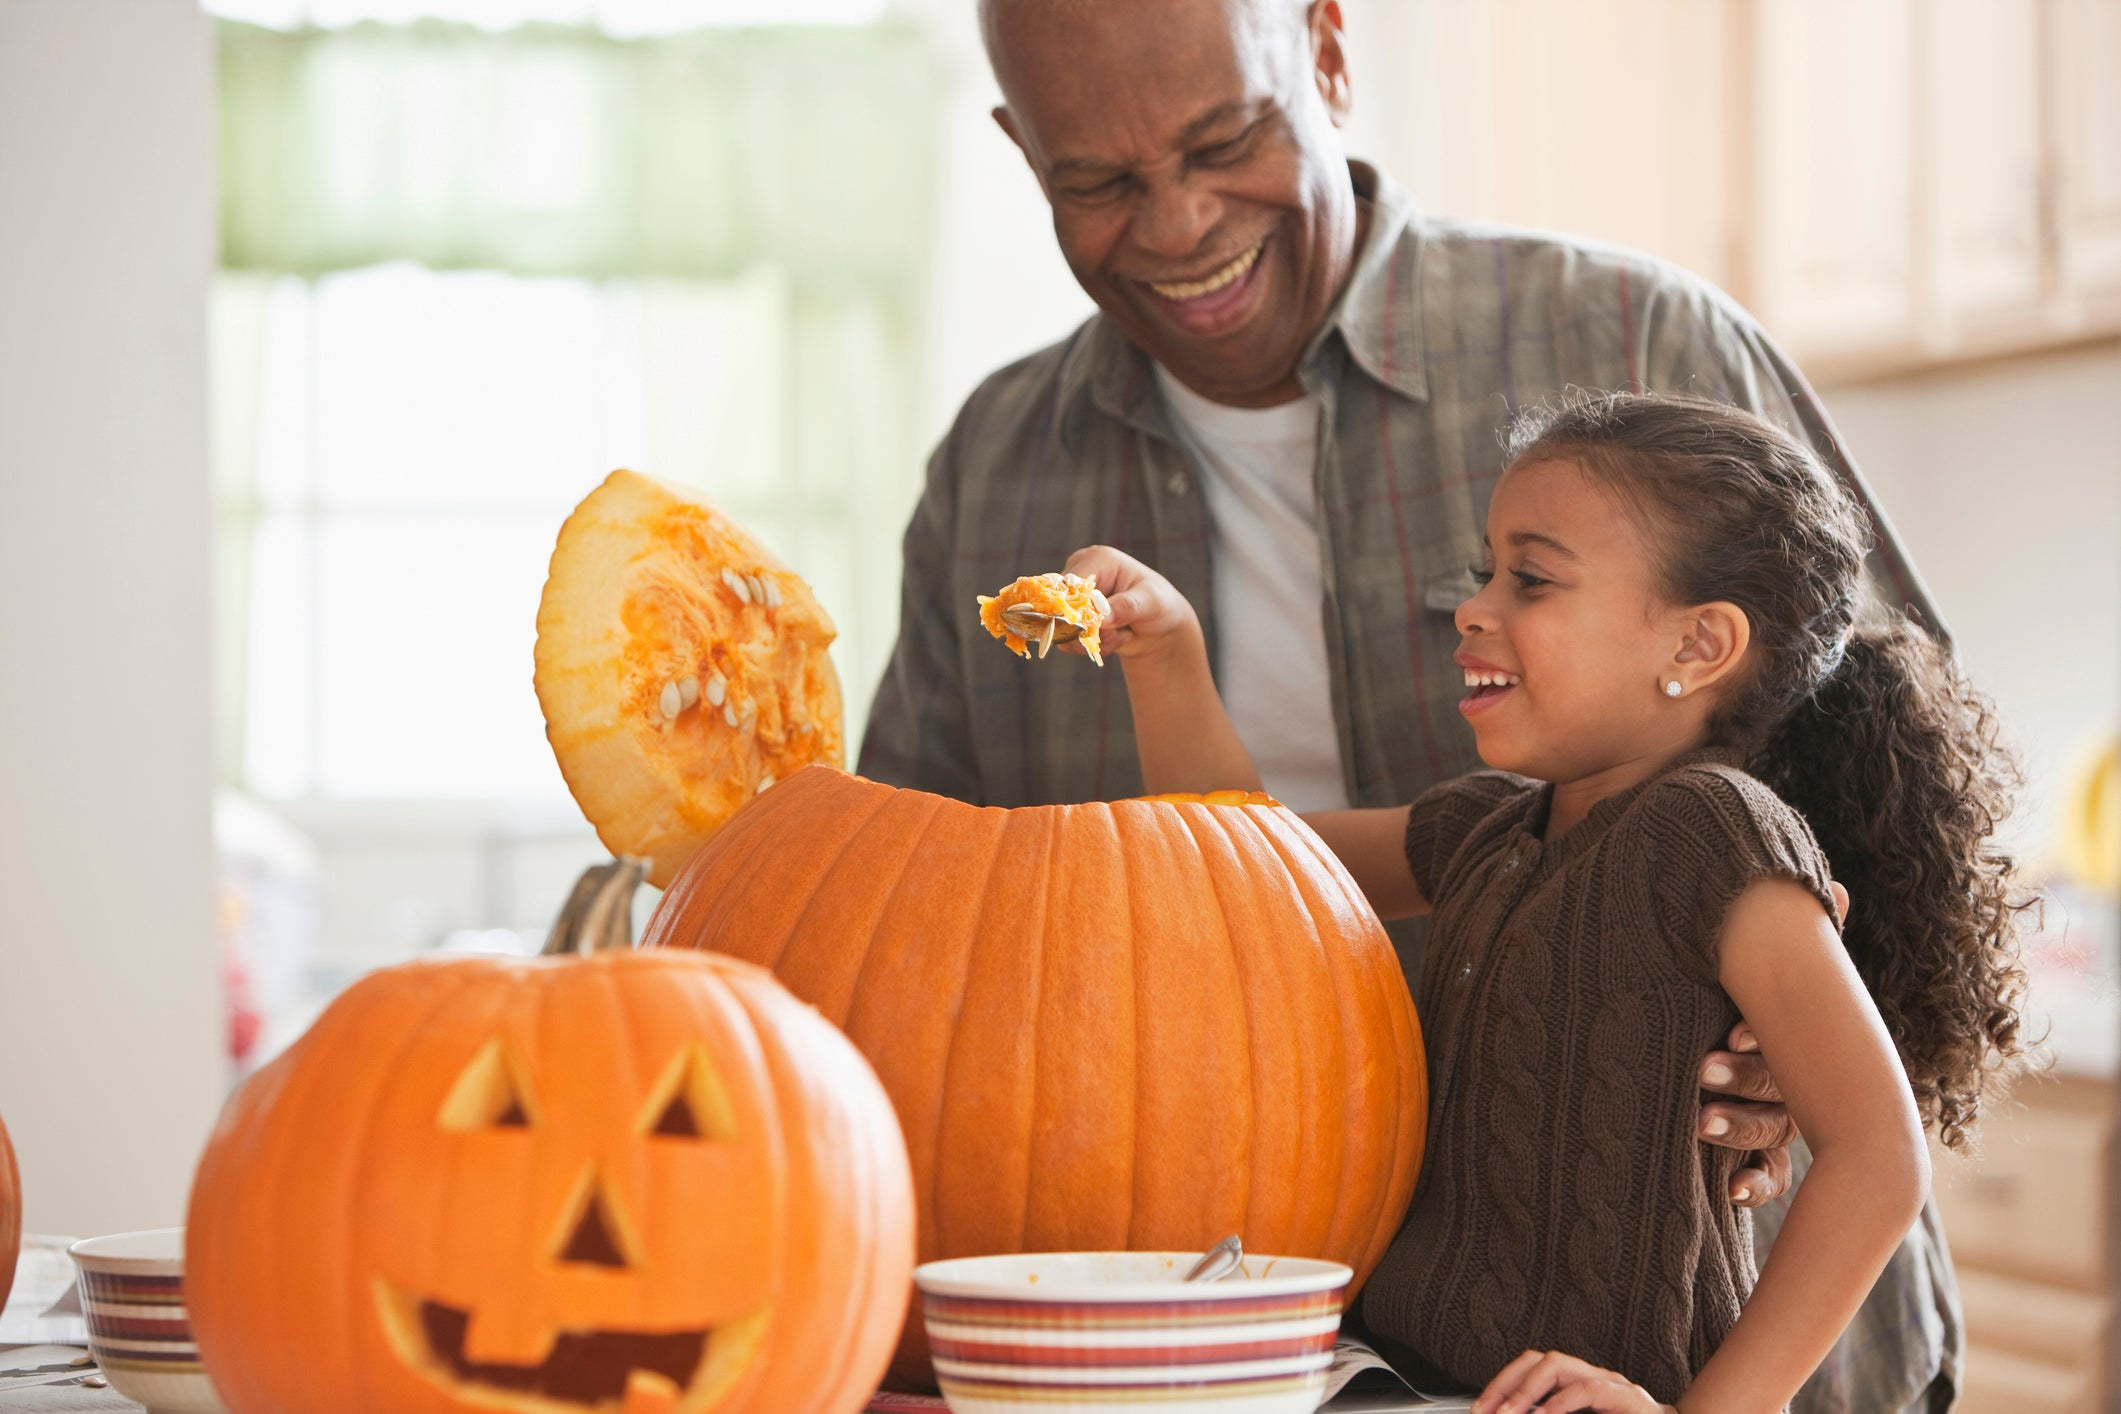 grandfather and granddaughter carving a pumpkin